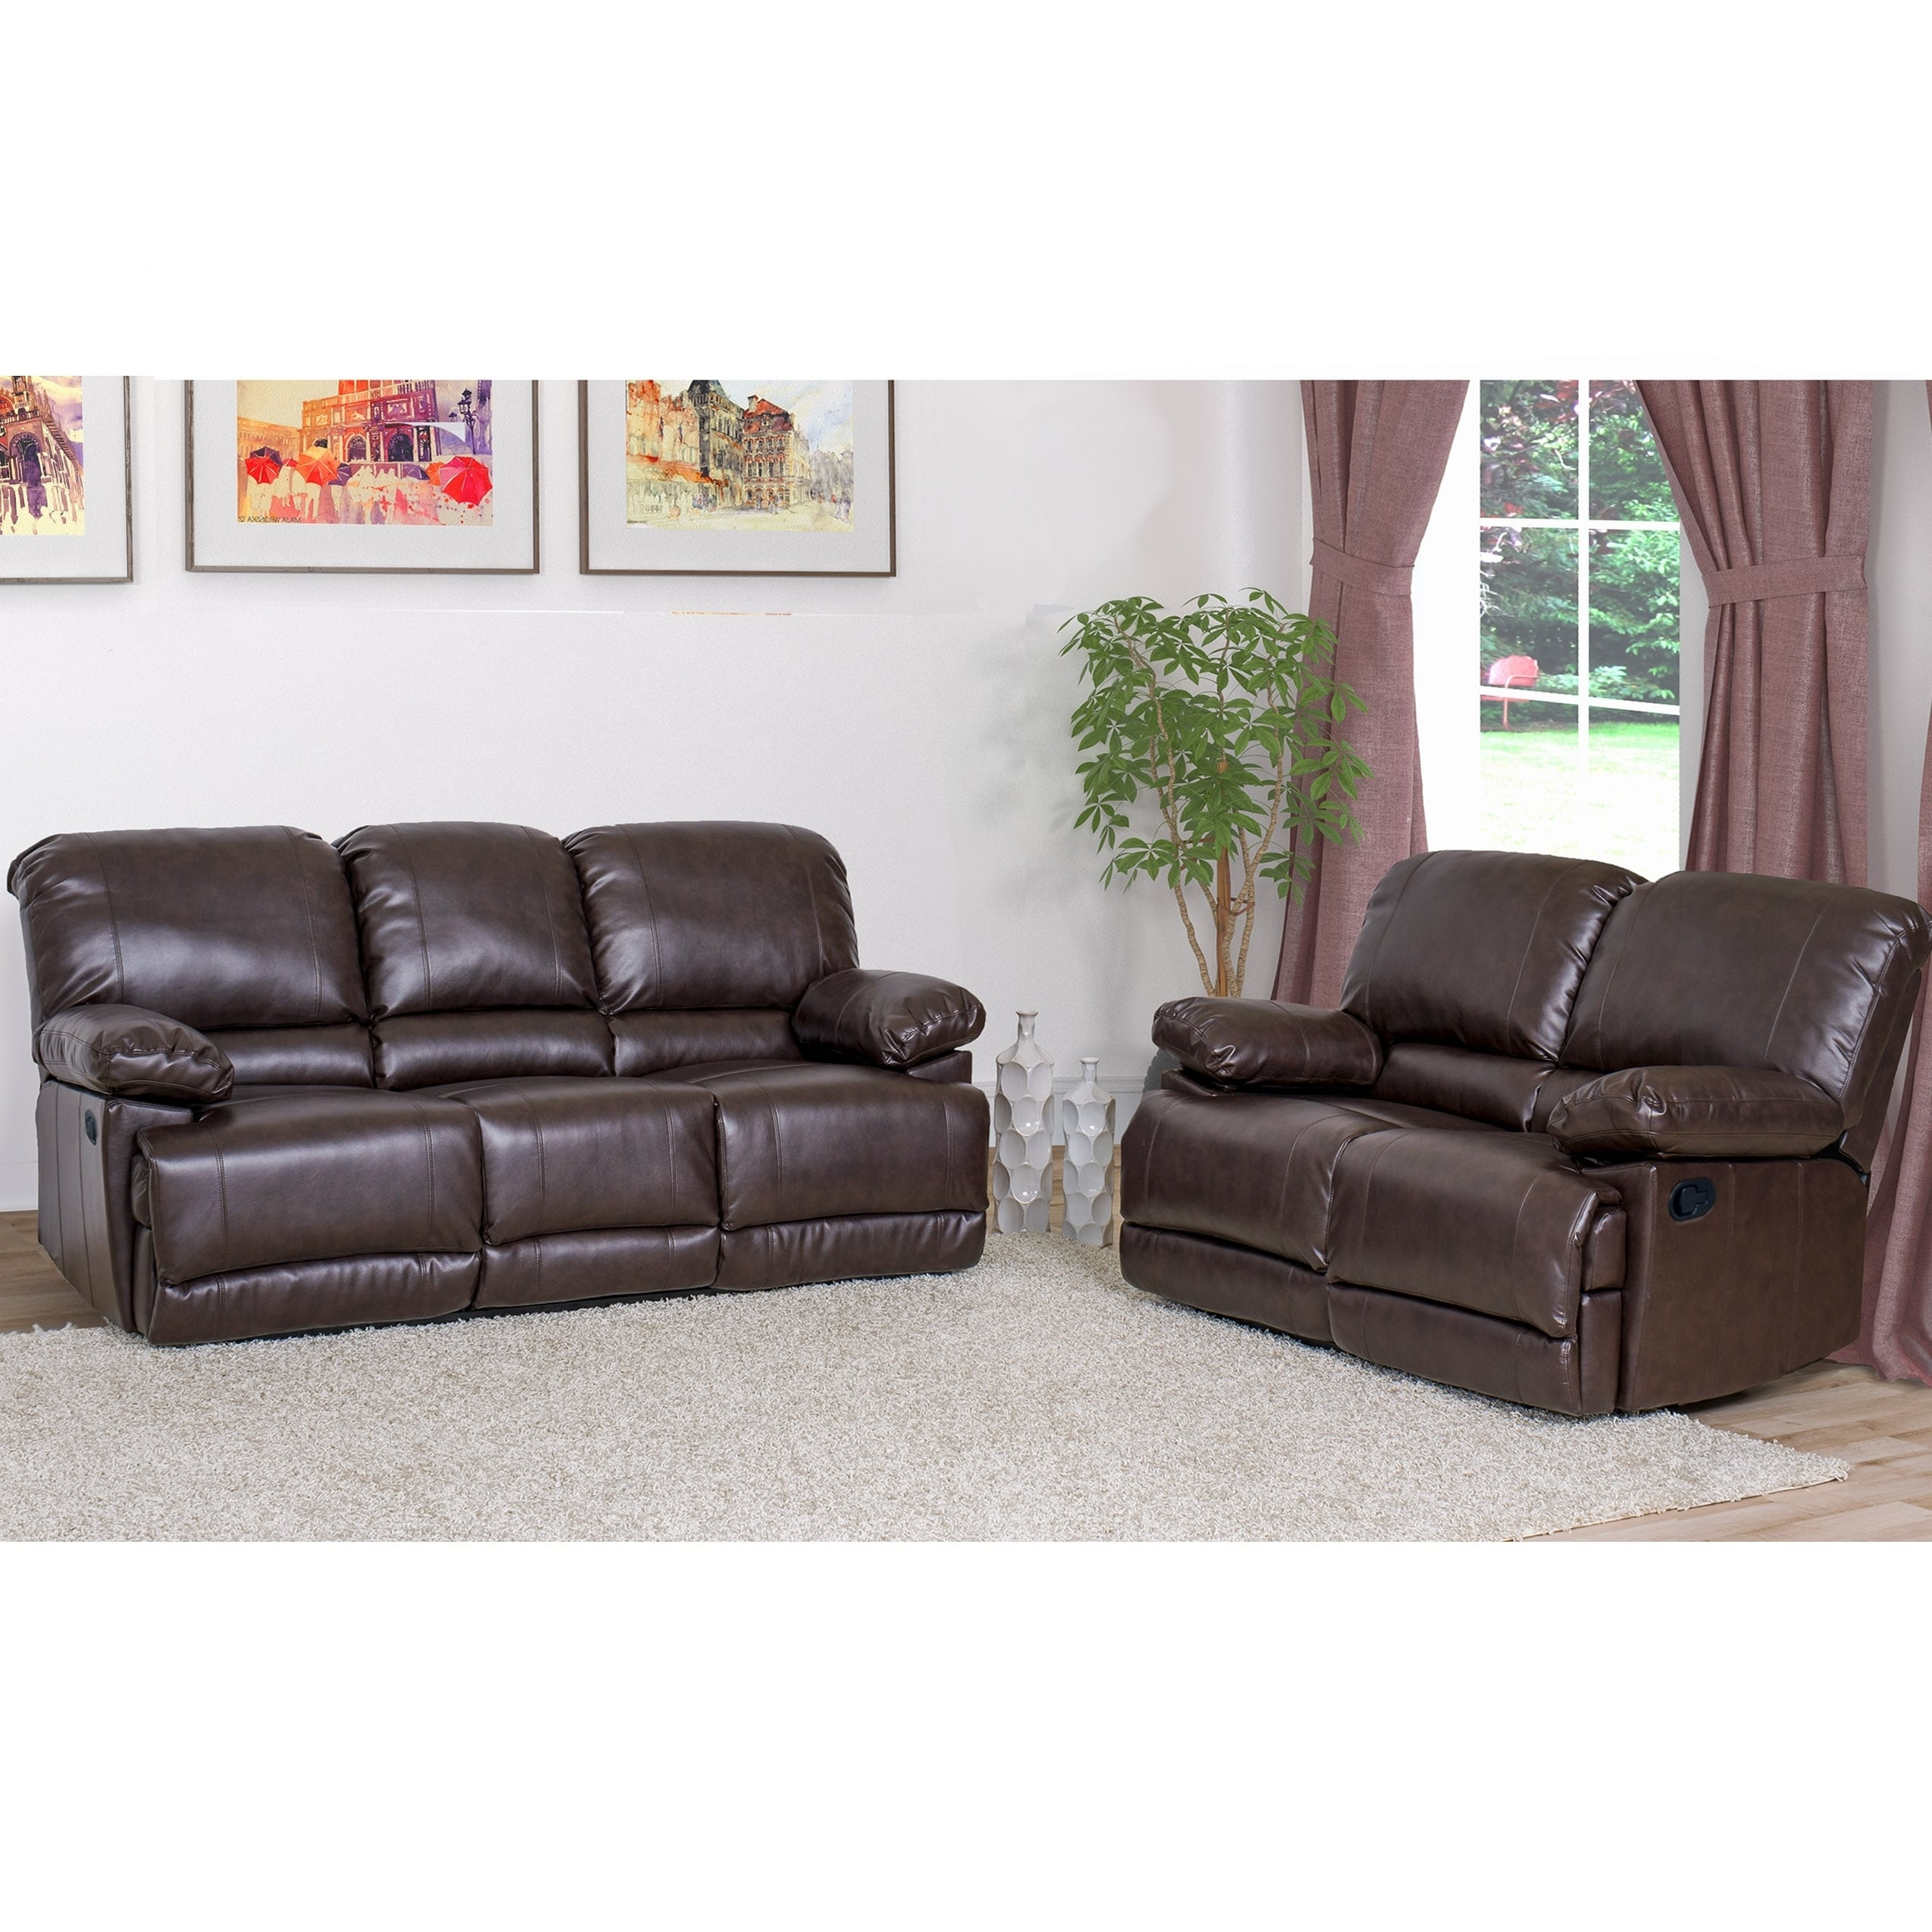 CorLiving Lea 2pc Chocolate Brown Bonded Leather Reclining Sofa Set